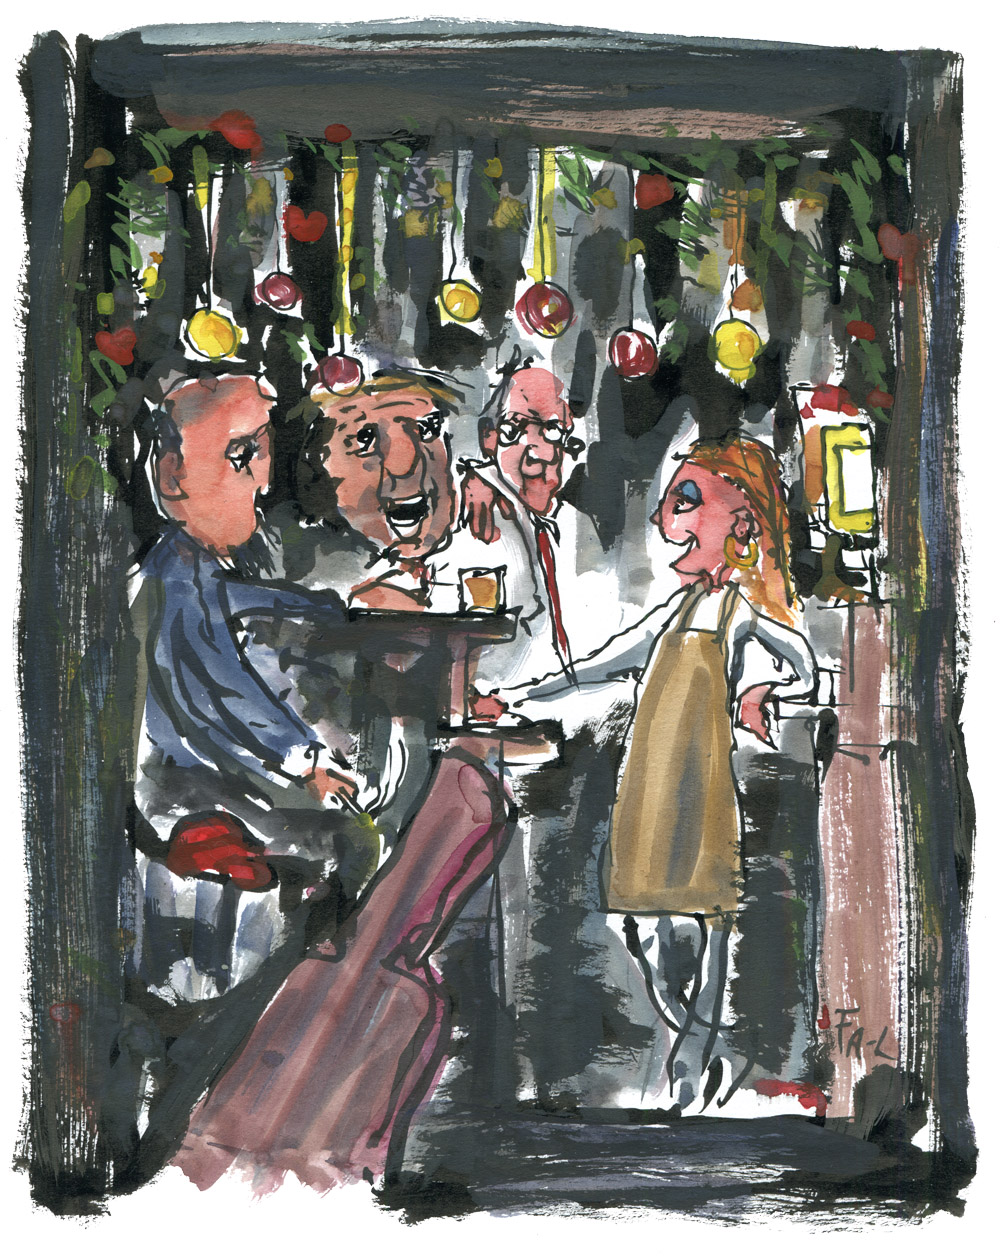 People in an old cafe' Sketch by Frits Ahlefeldt